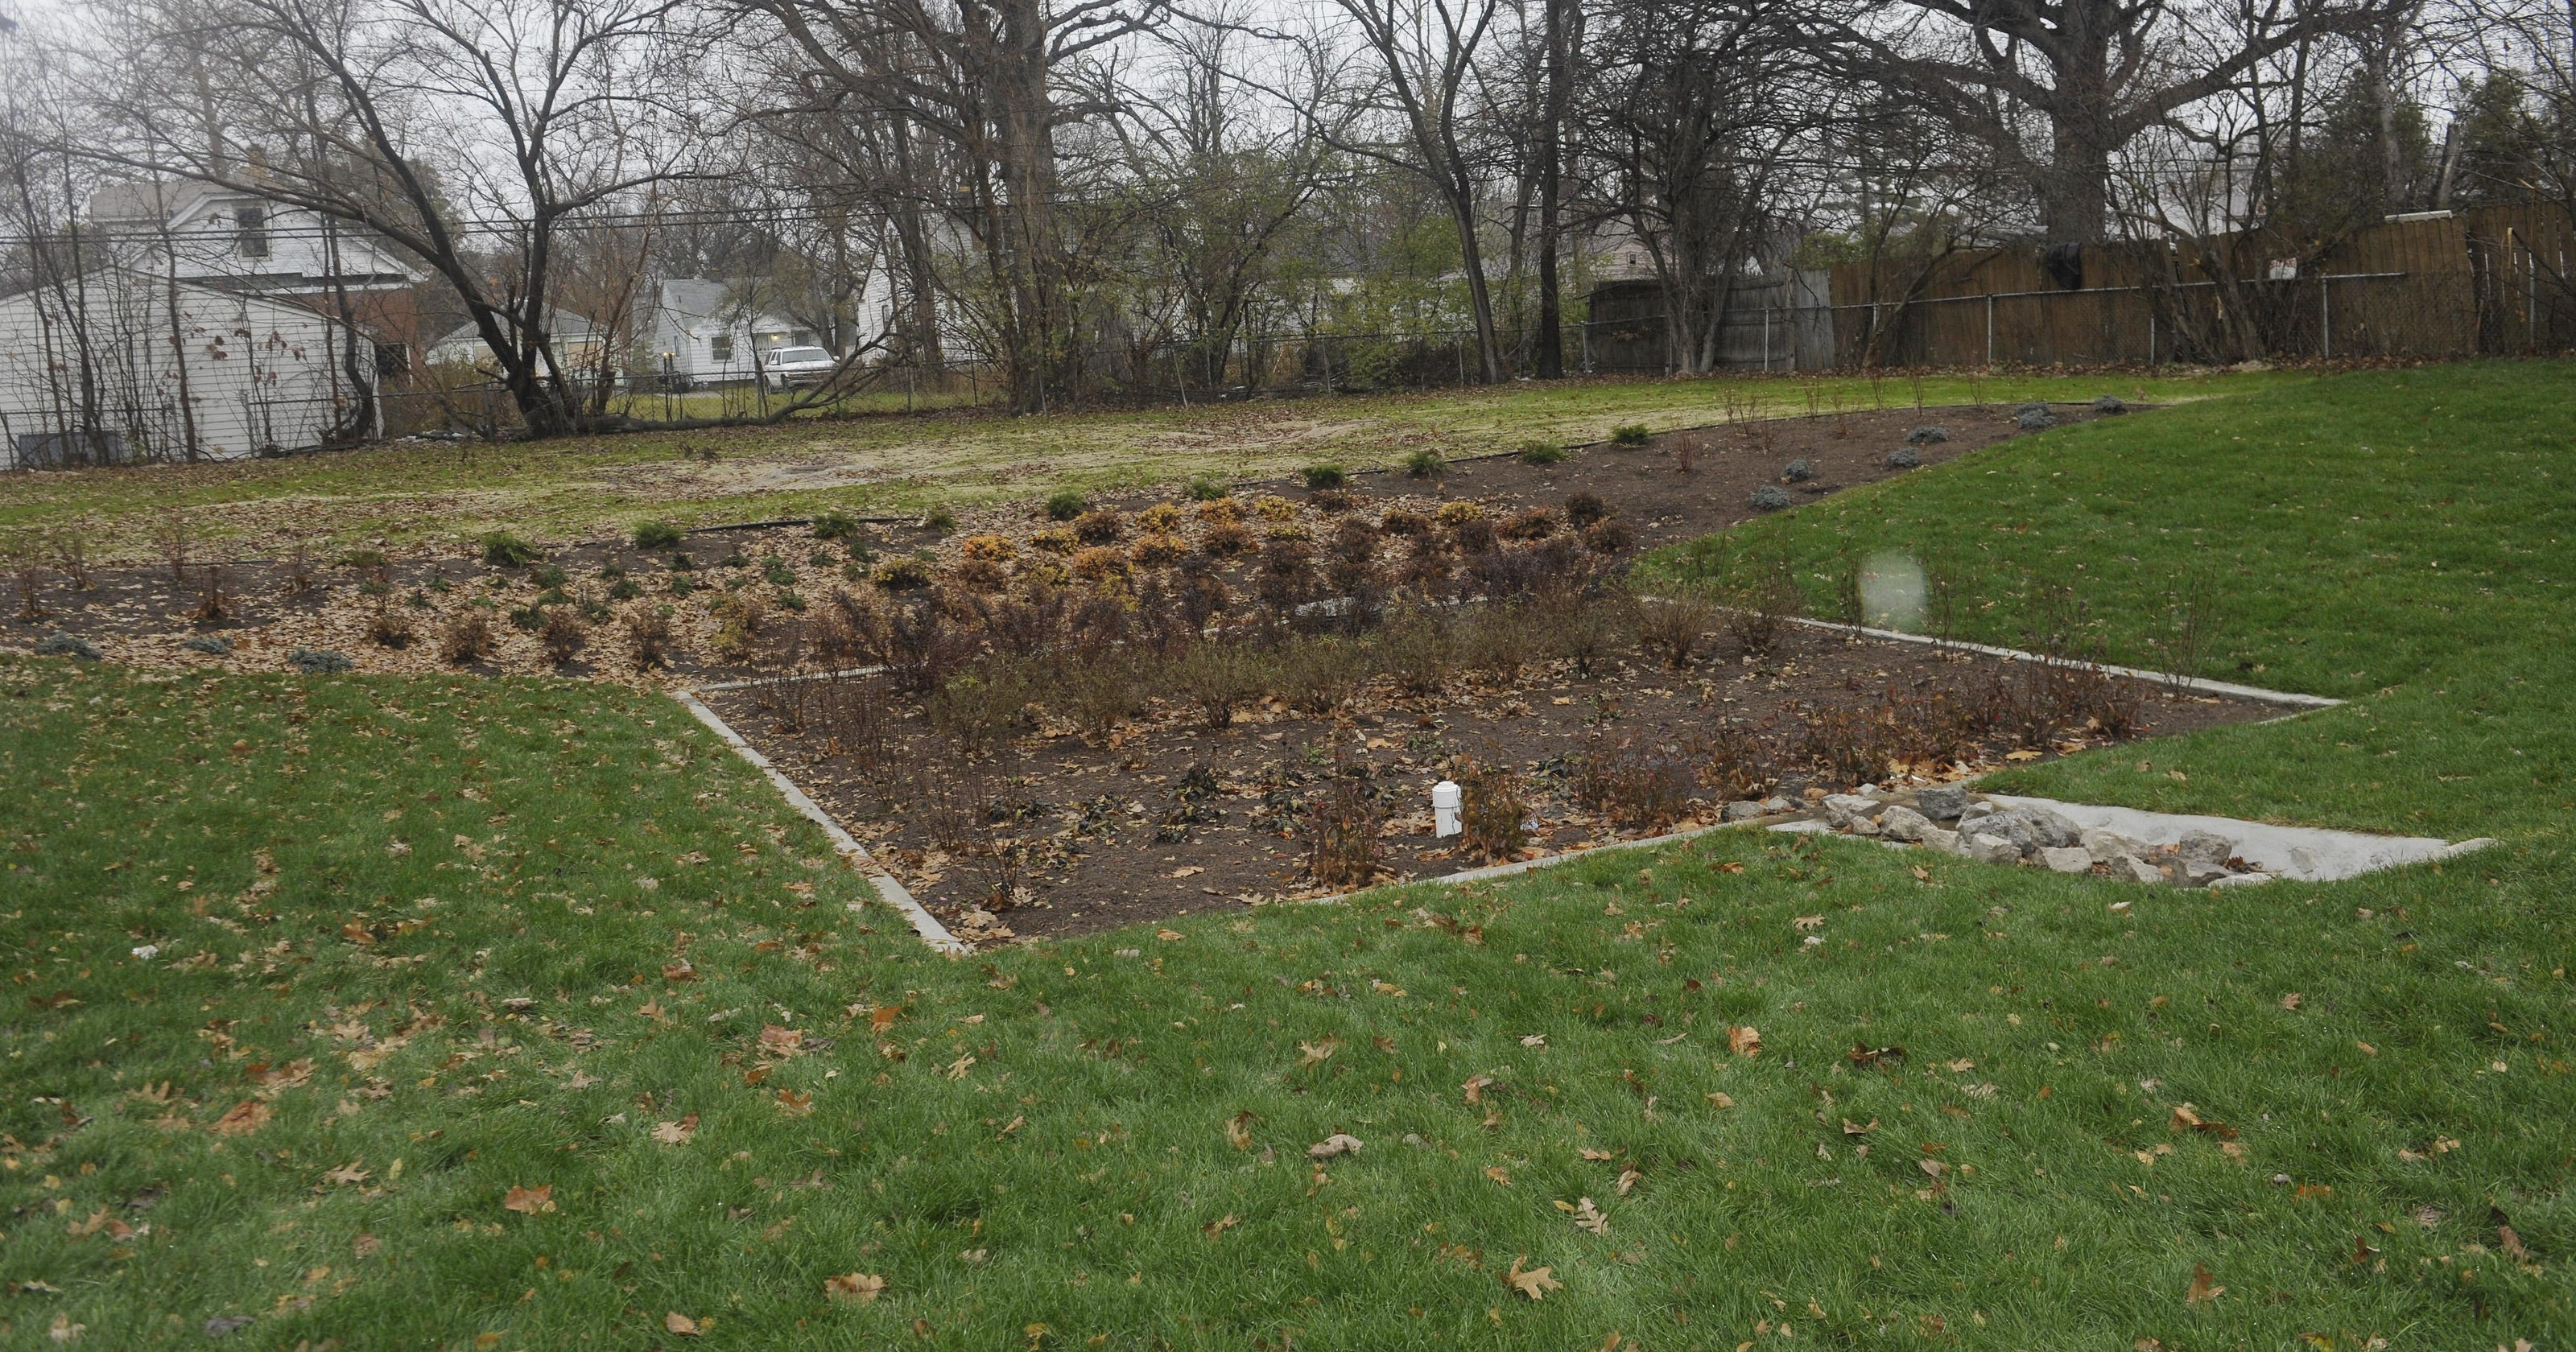 Designers hope vacant lot gardens help keep river water clean